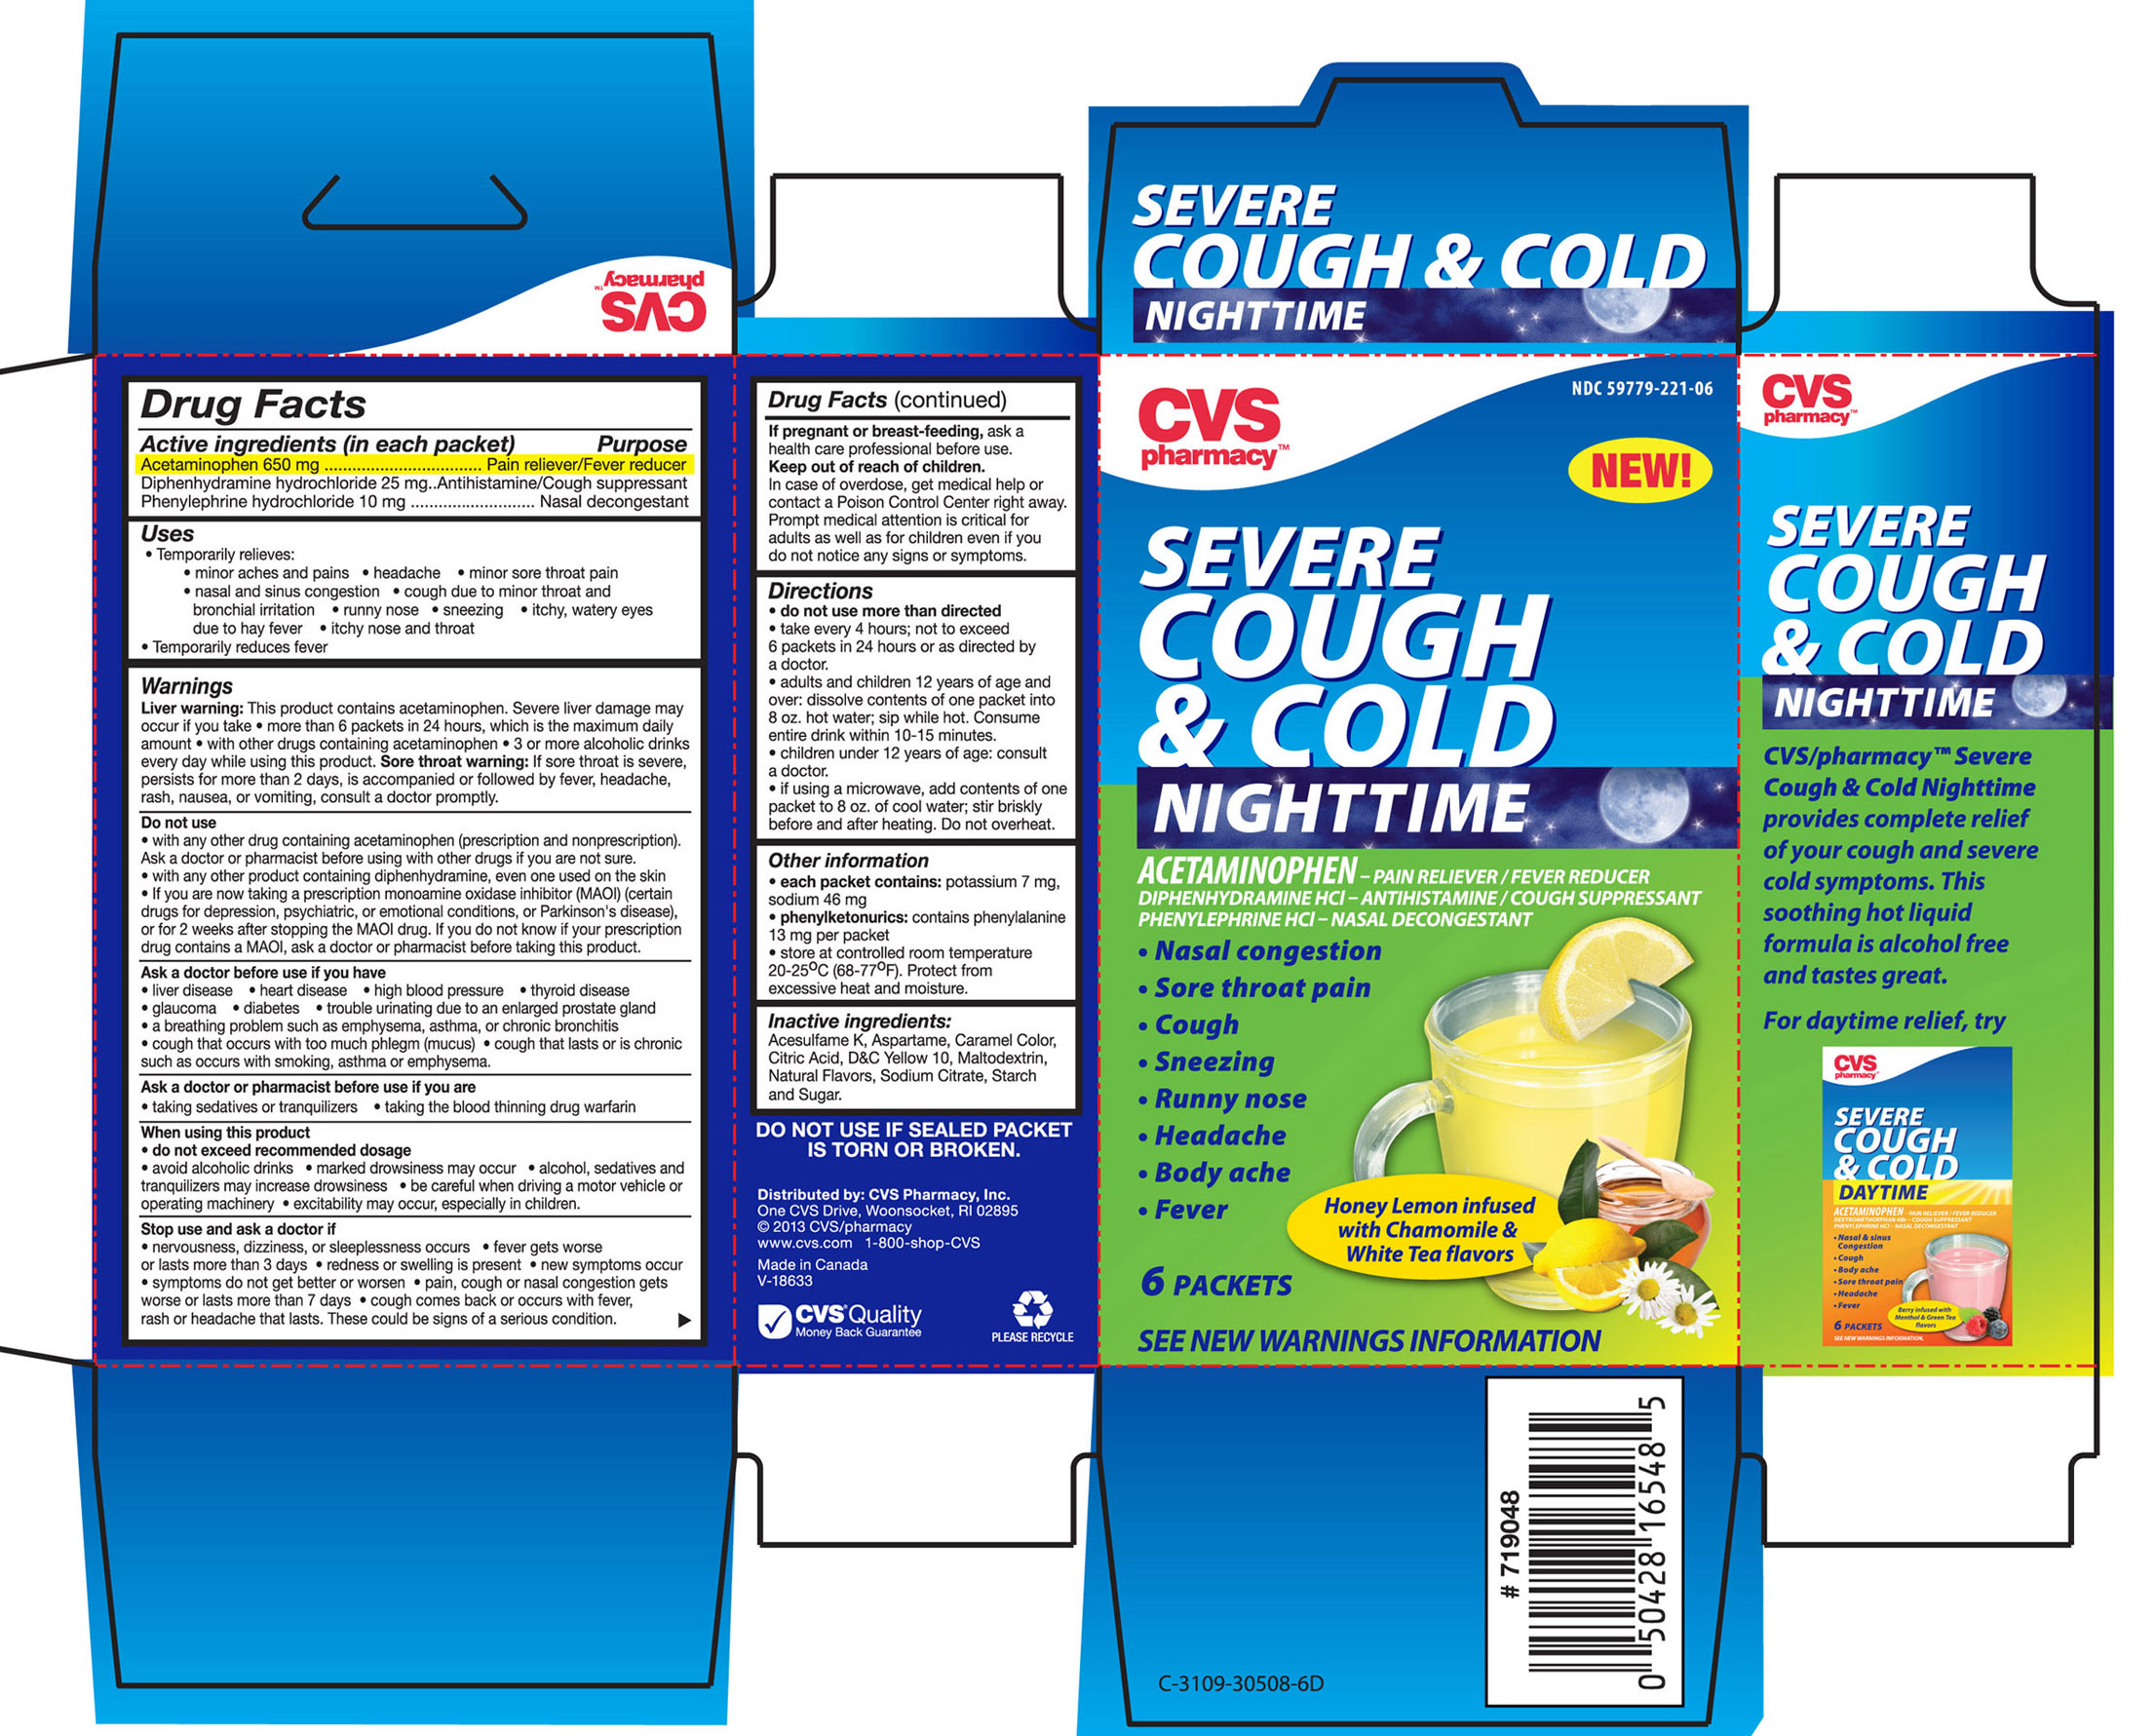 Cvs Pharmacy Nighttime Severe Cough And Cold Honey Lemon Infused With Chamomile And White Tea Flavors (Acetaminophen, Diphenhydramine Hcl And Phenylephrine Hcl) Granule, For Solution [Cvs Pharmacy]